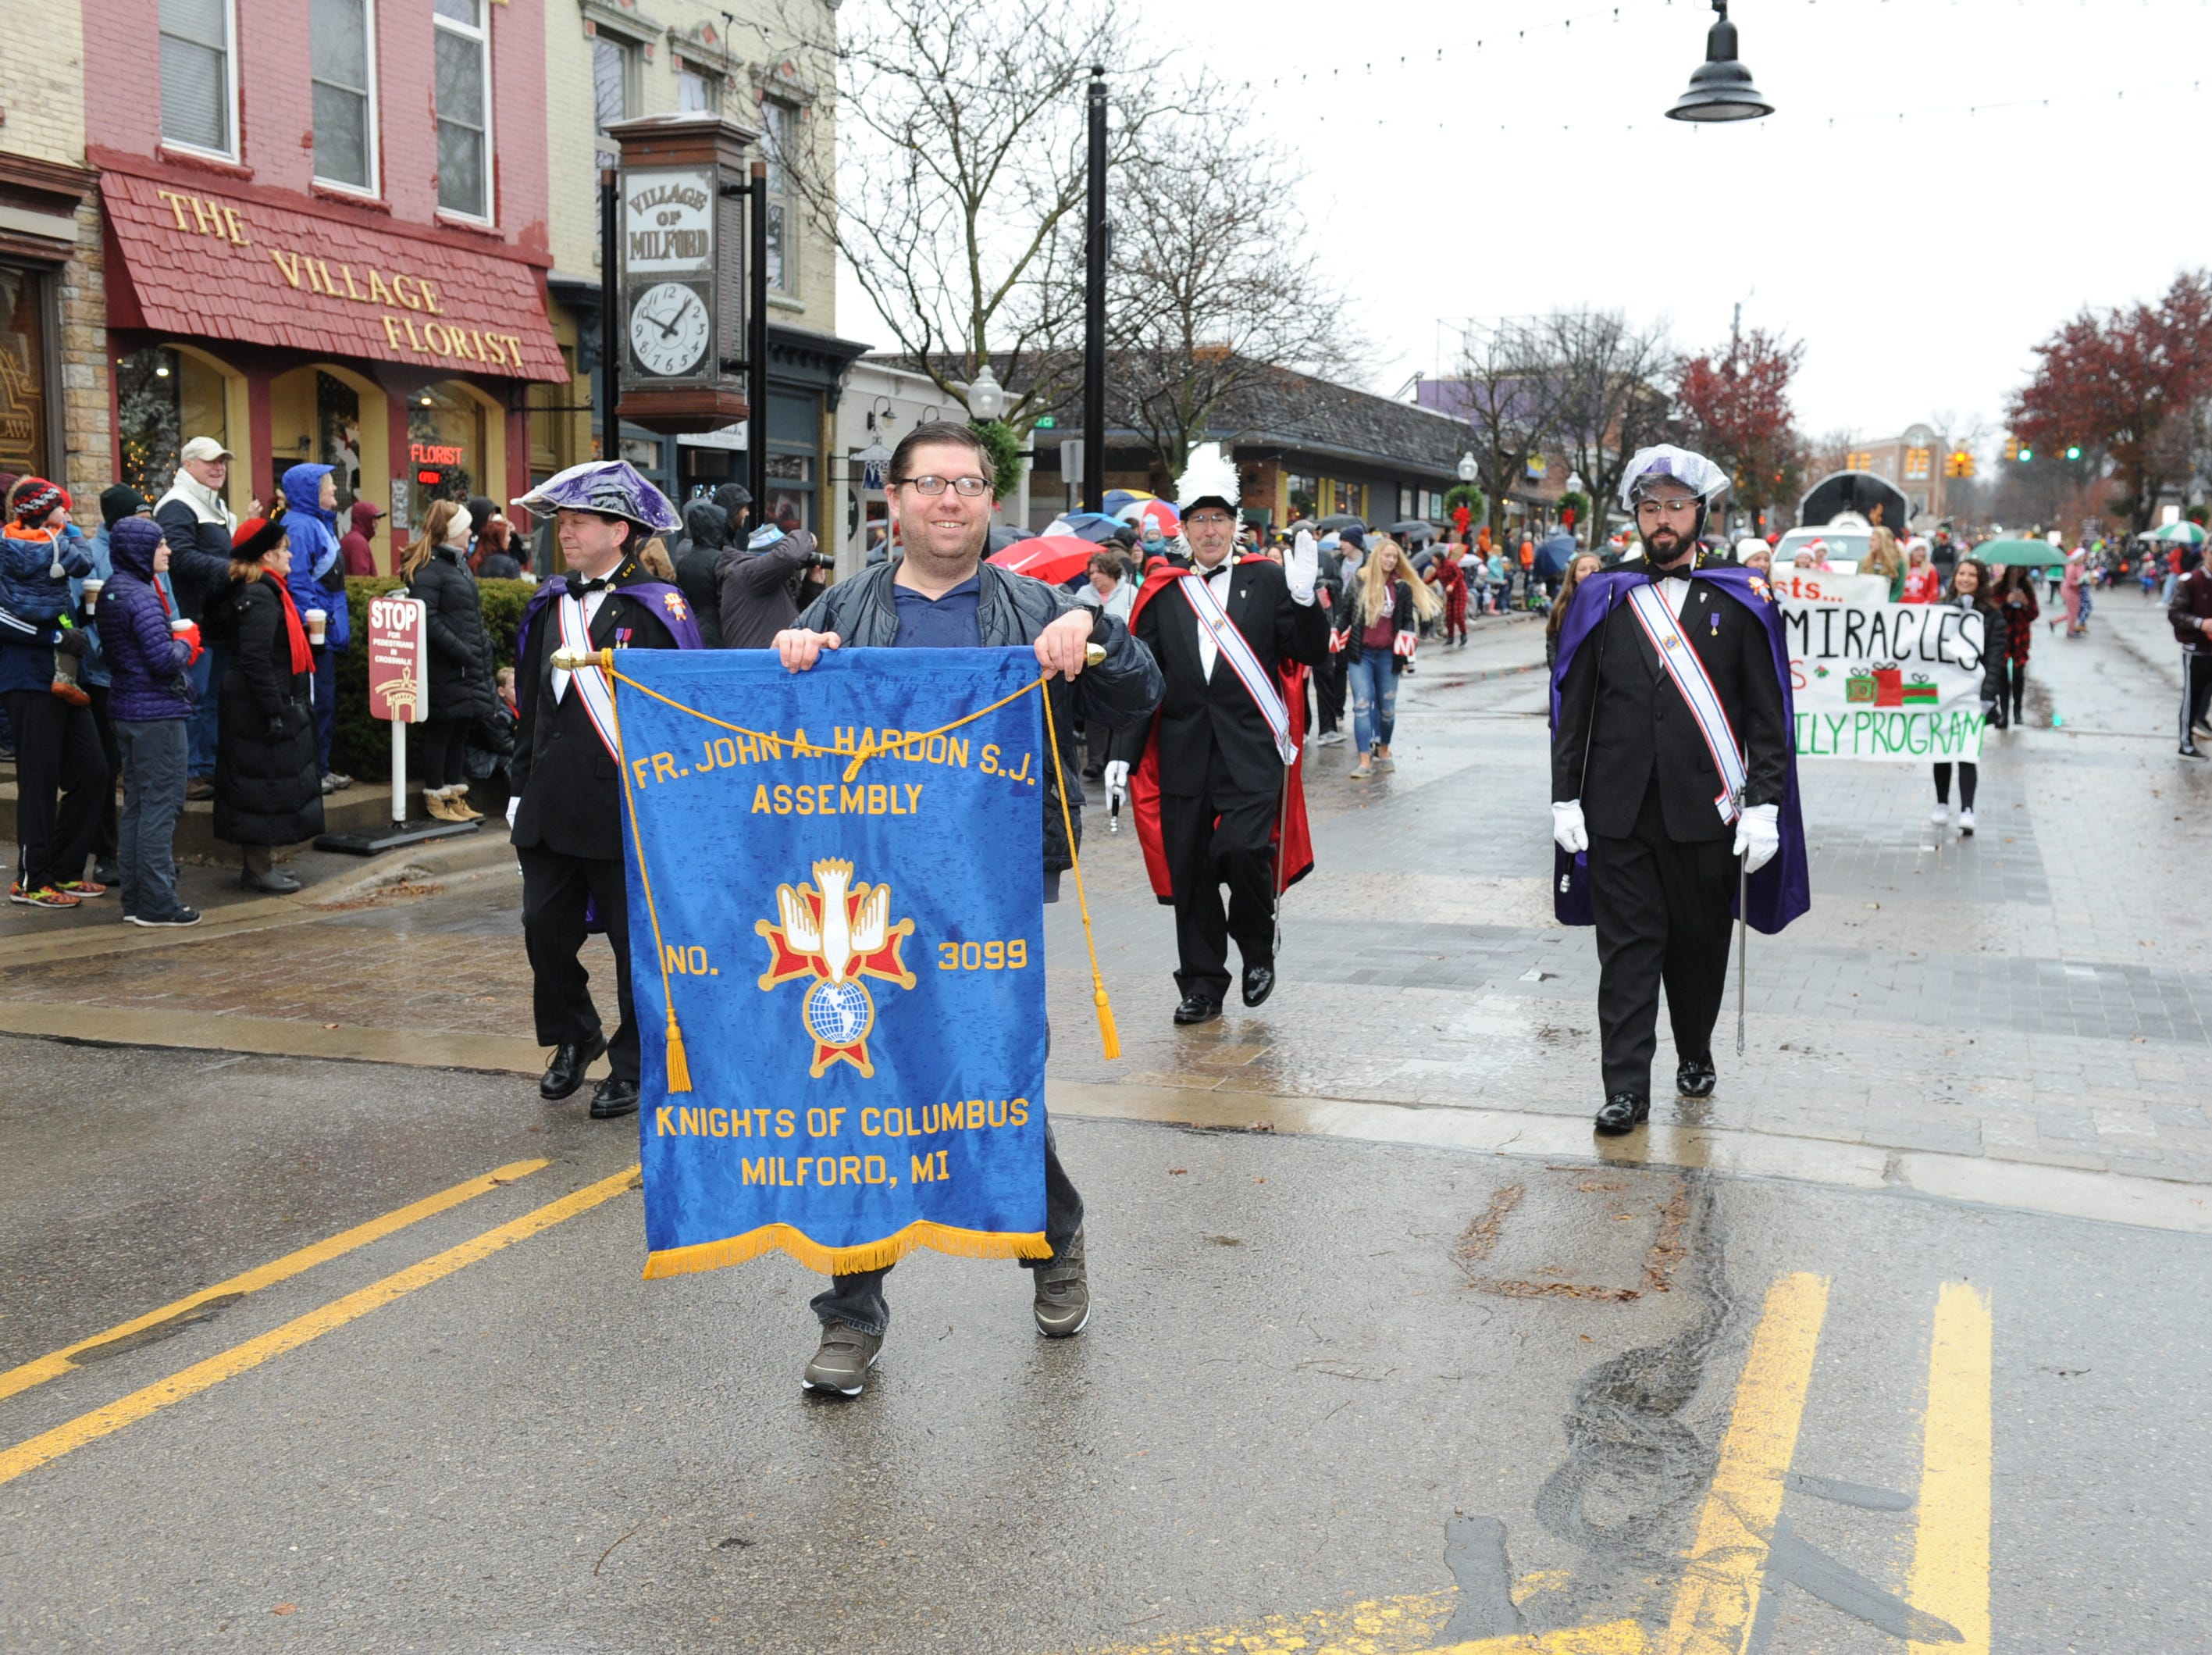 The Knights of Columbus 4th Degree Honor Guard takes part in the annual Milford Christmas parade.